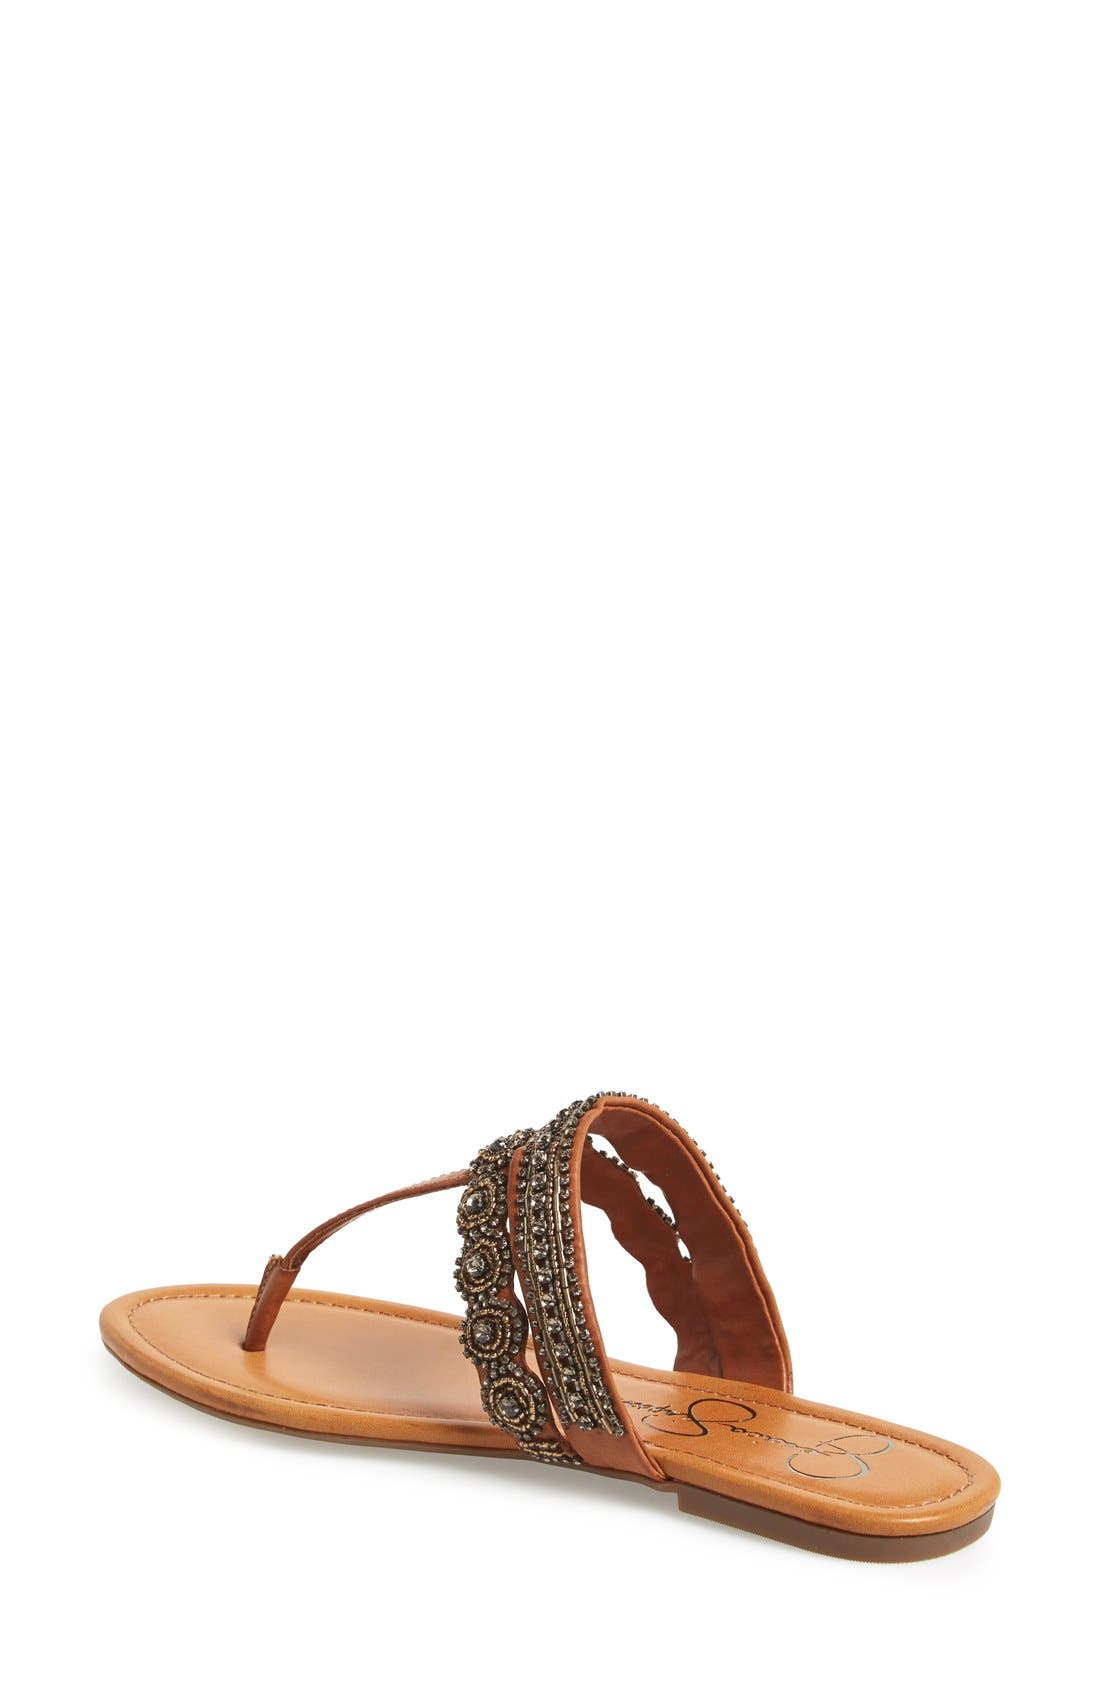 Alternate Image 2  - Jessica Simpson 'Roelle' Embellished Sandal (Women)